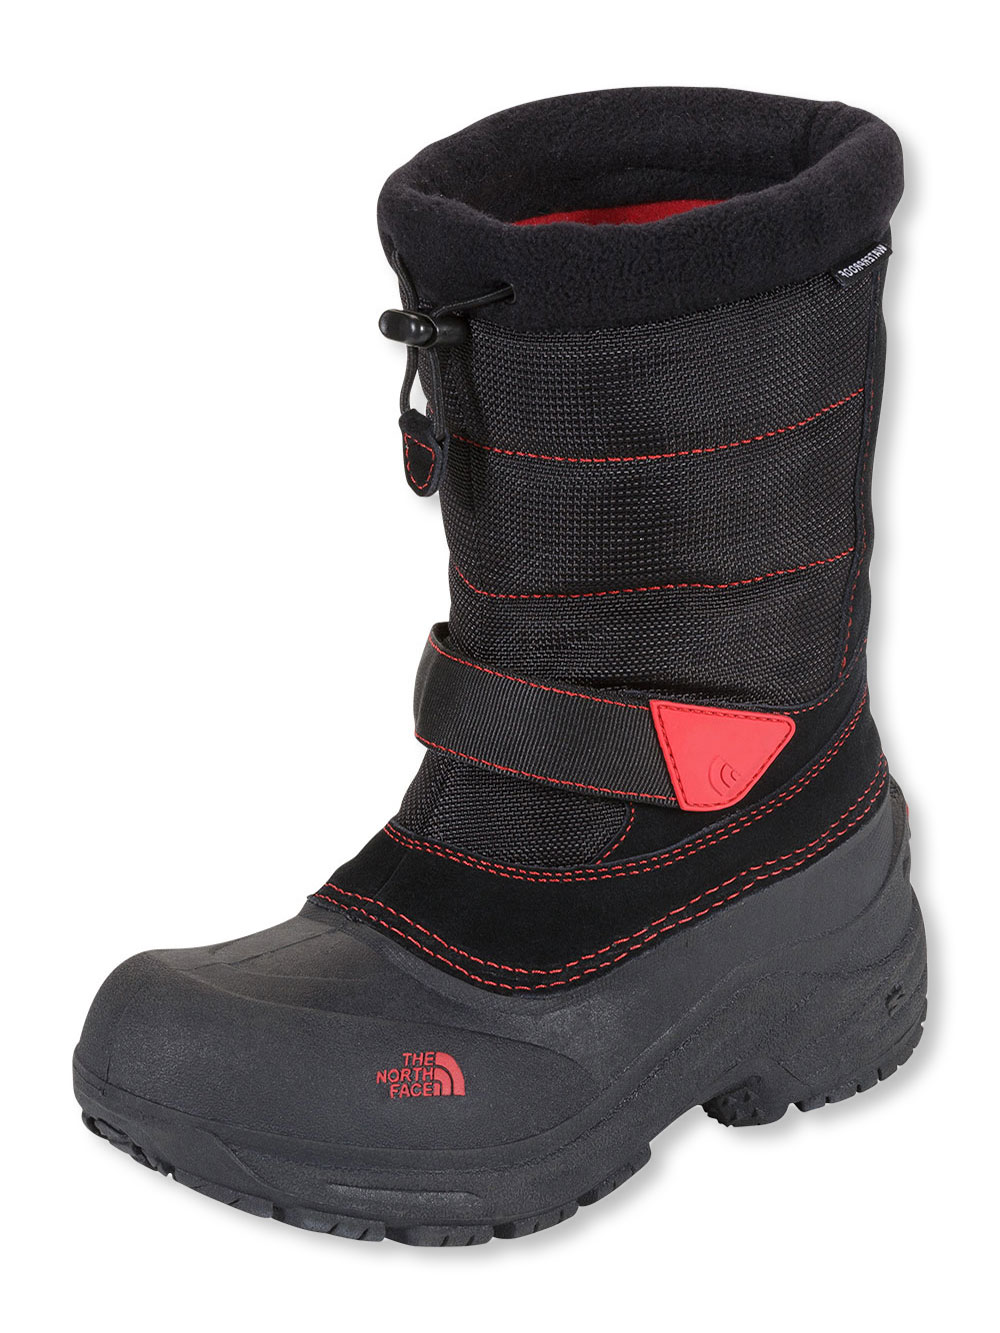 71a16a4ab Girls' Alpenglow Extreme Boot by The North Face in Black/red